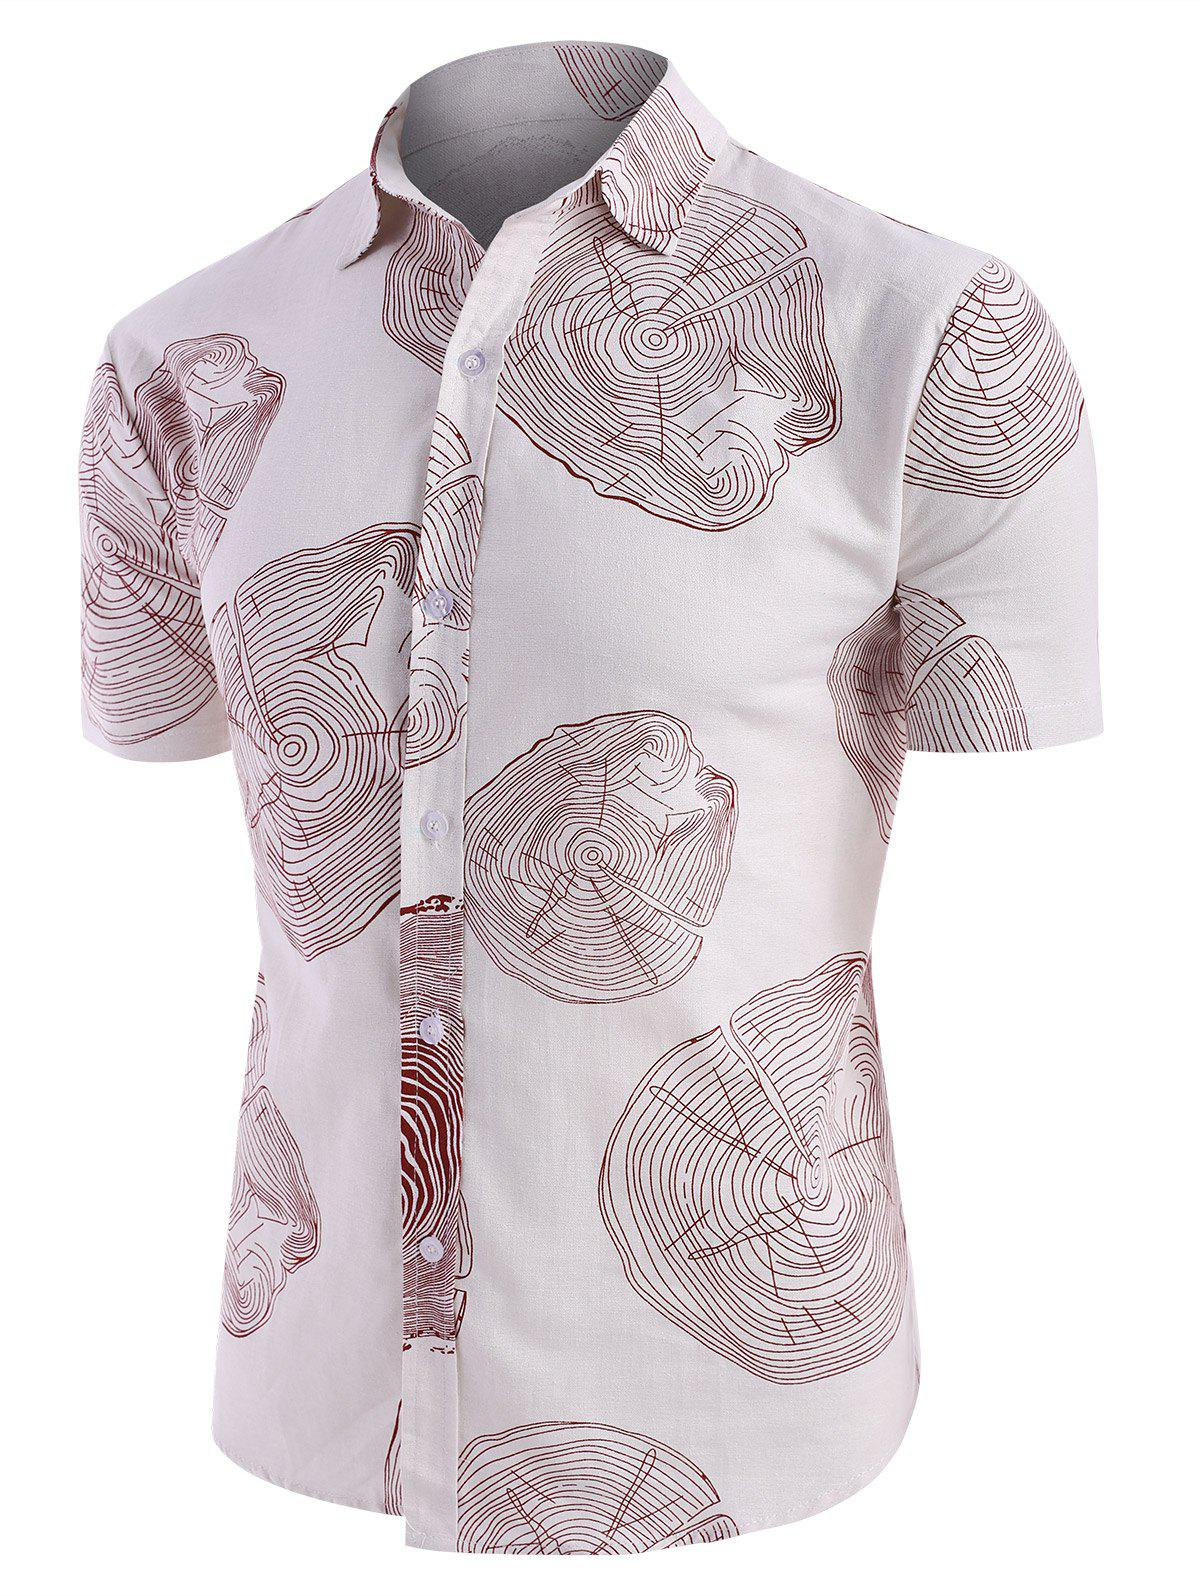 Tree Ring Print Short Sleeve Linen Shirt - multicolor B 2XL